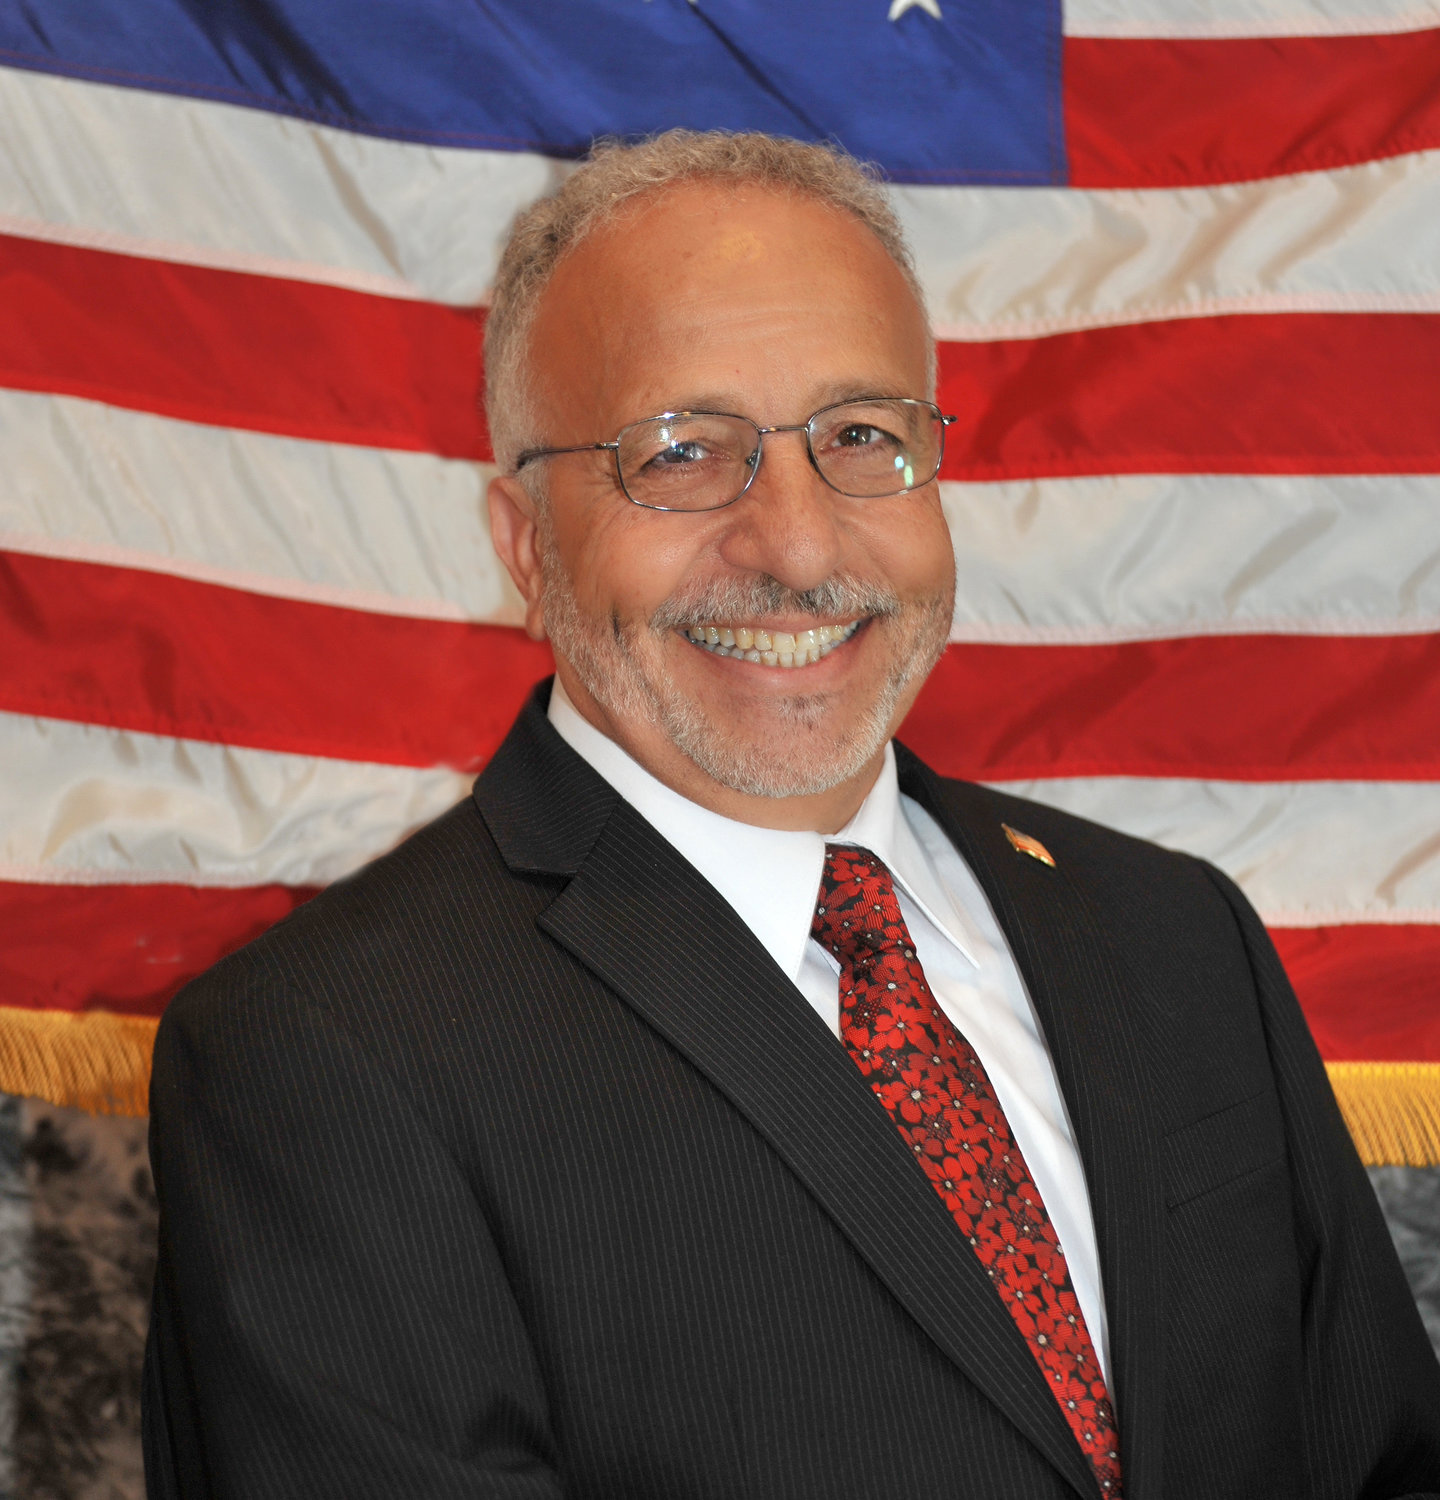 A letter read at Tuesday night's pre-council meeting indicated that Michael Zangari would resign from his role as councilman for the City of Glen Cove.